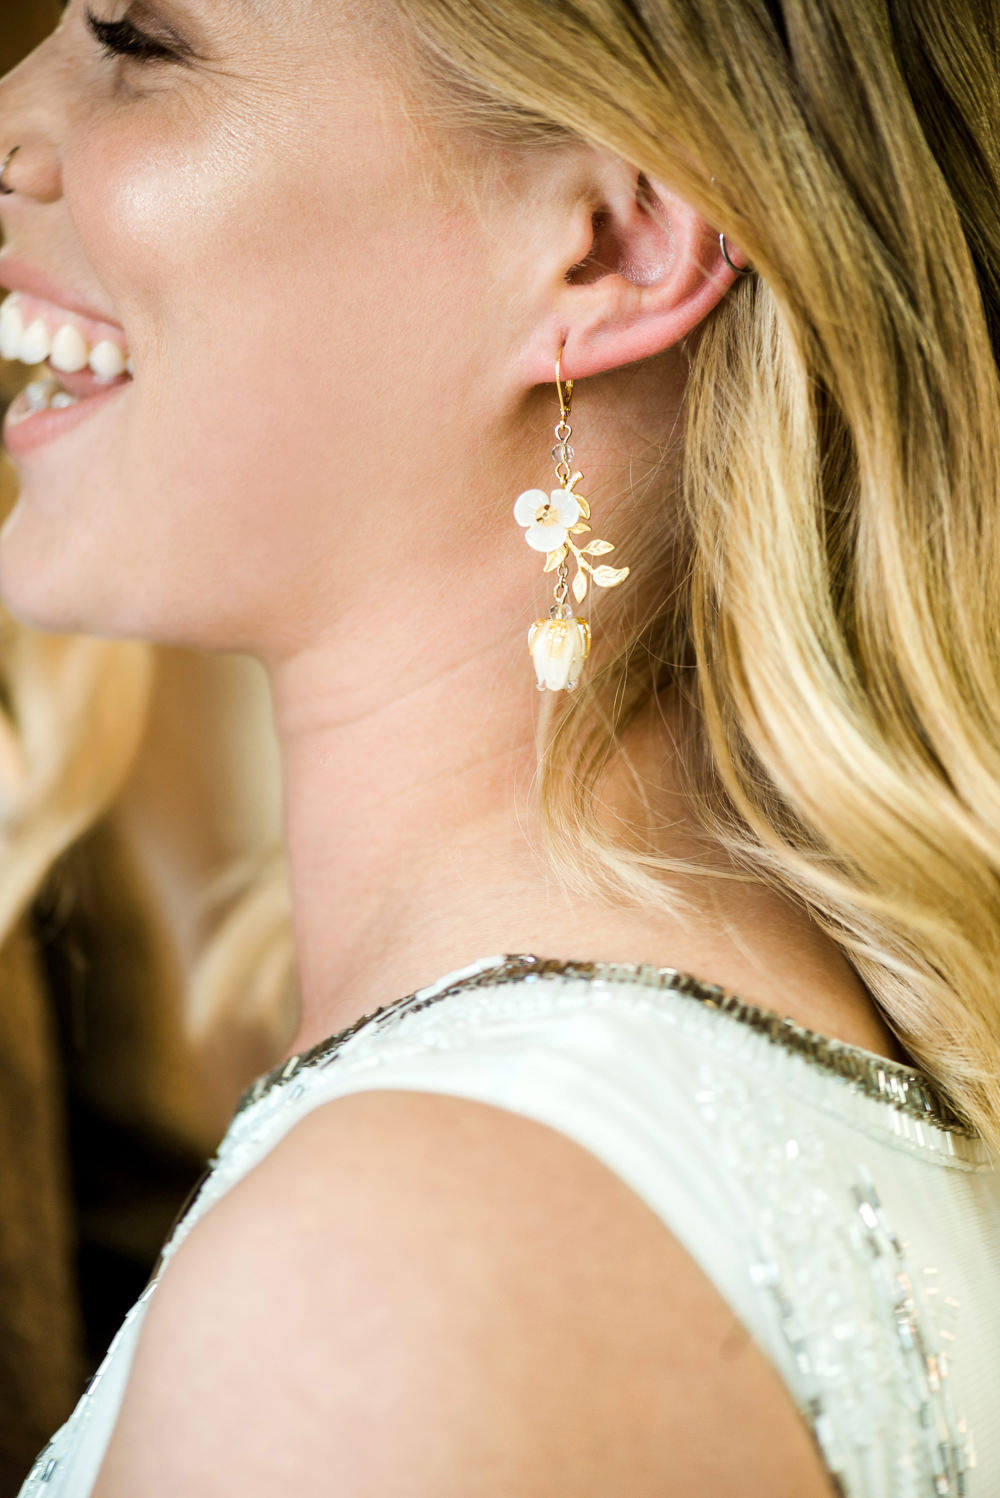 Bride Bridal Earrings Indie Wedding Ideas Kat Antos-Lewis Photography